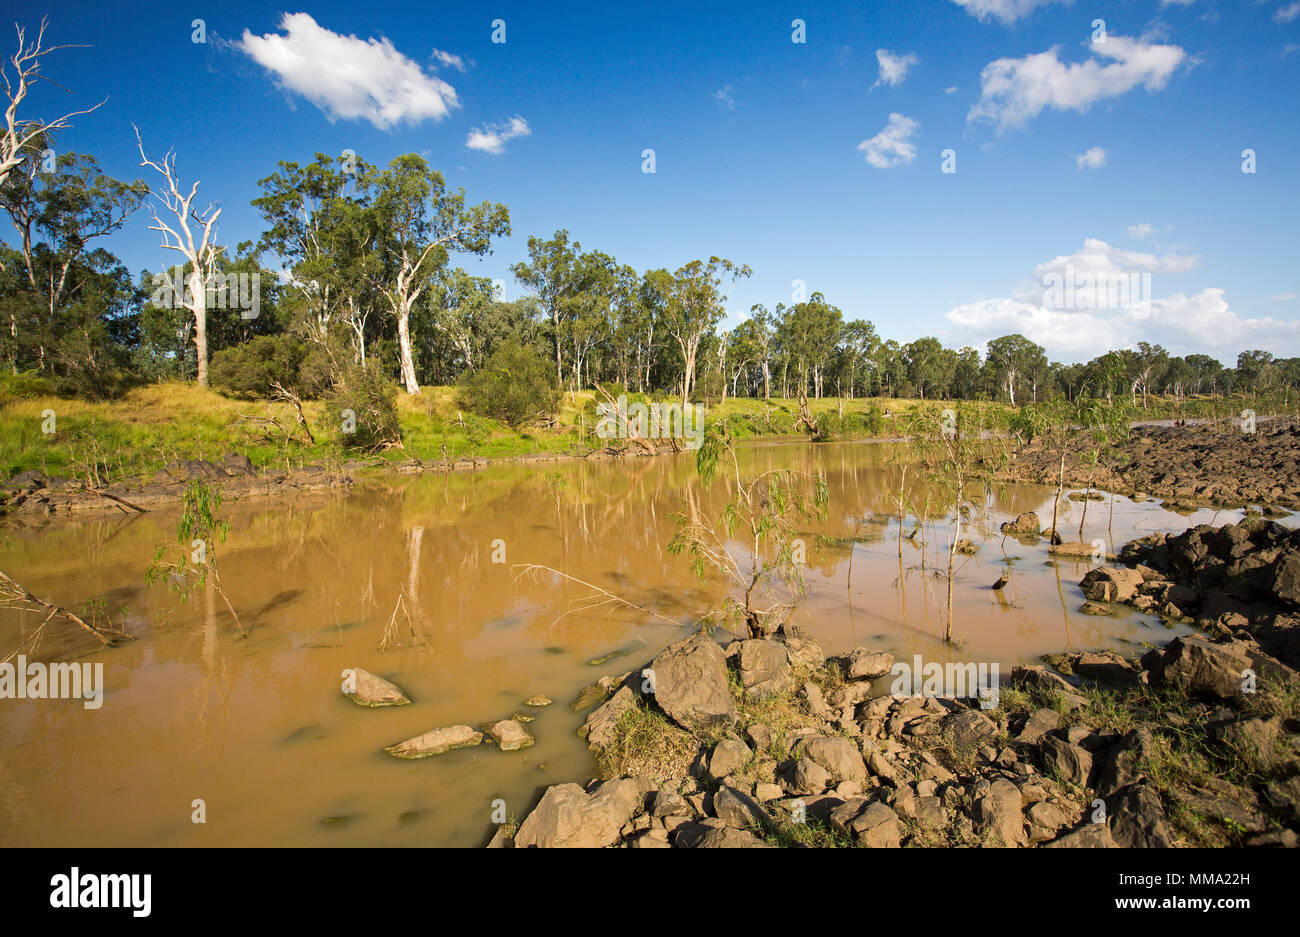 Colourful landscape with calm waters of Fitzroy River hemmed with tall trees and emerald grass under blue sky in central Queensland Australia - Stock Image